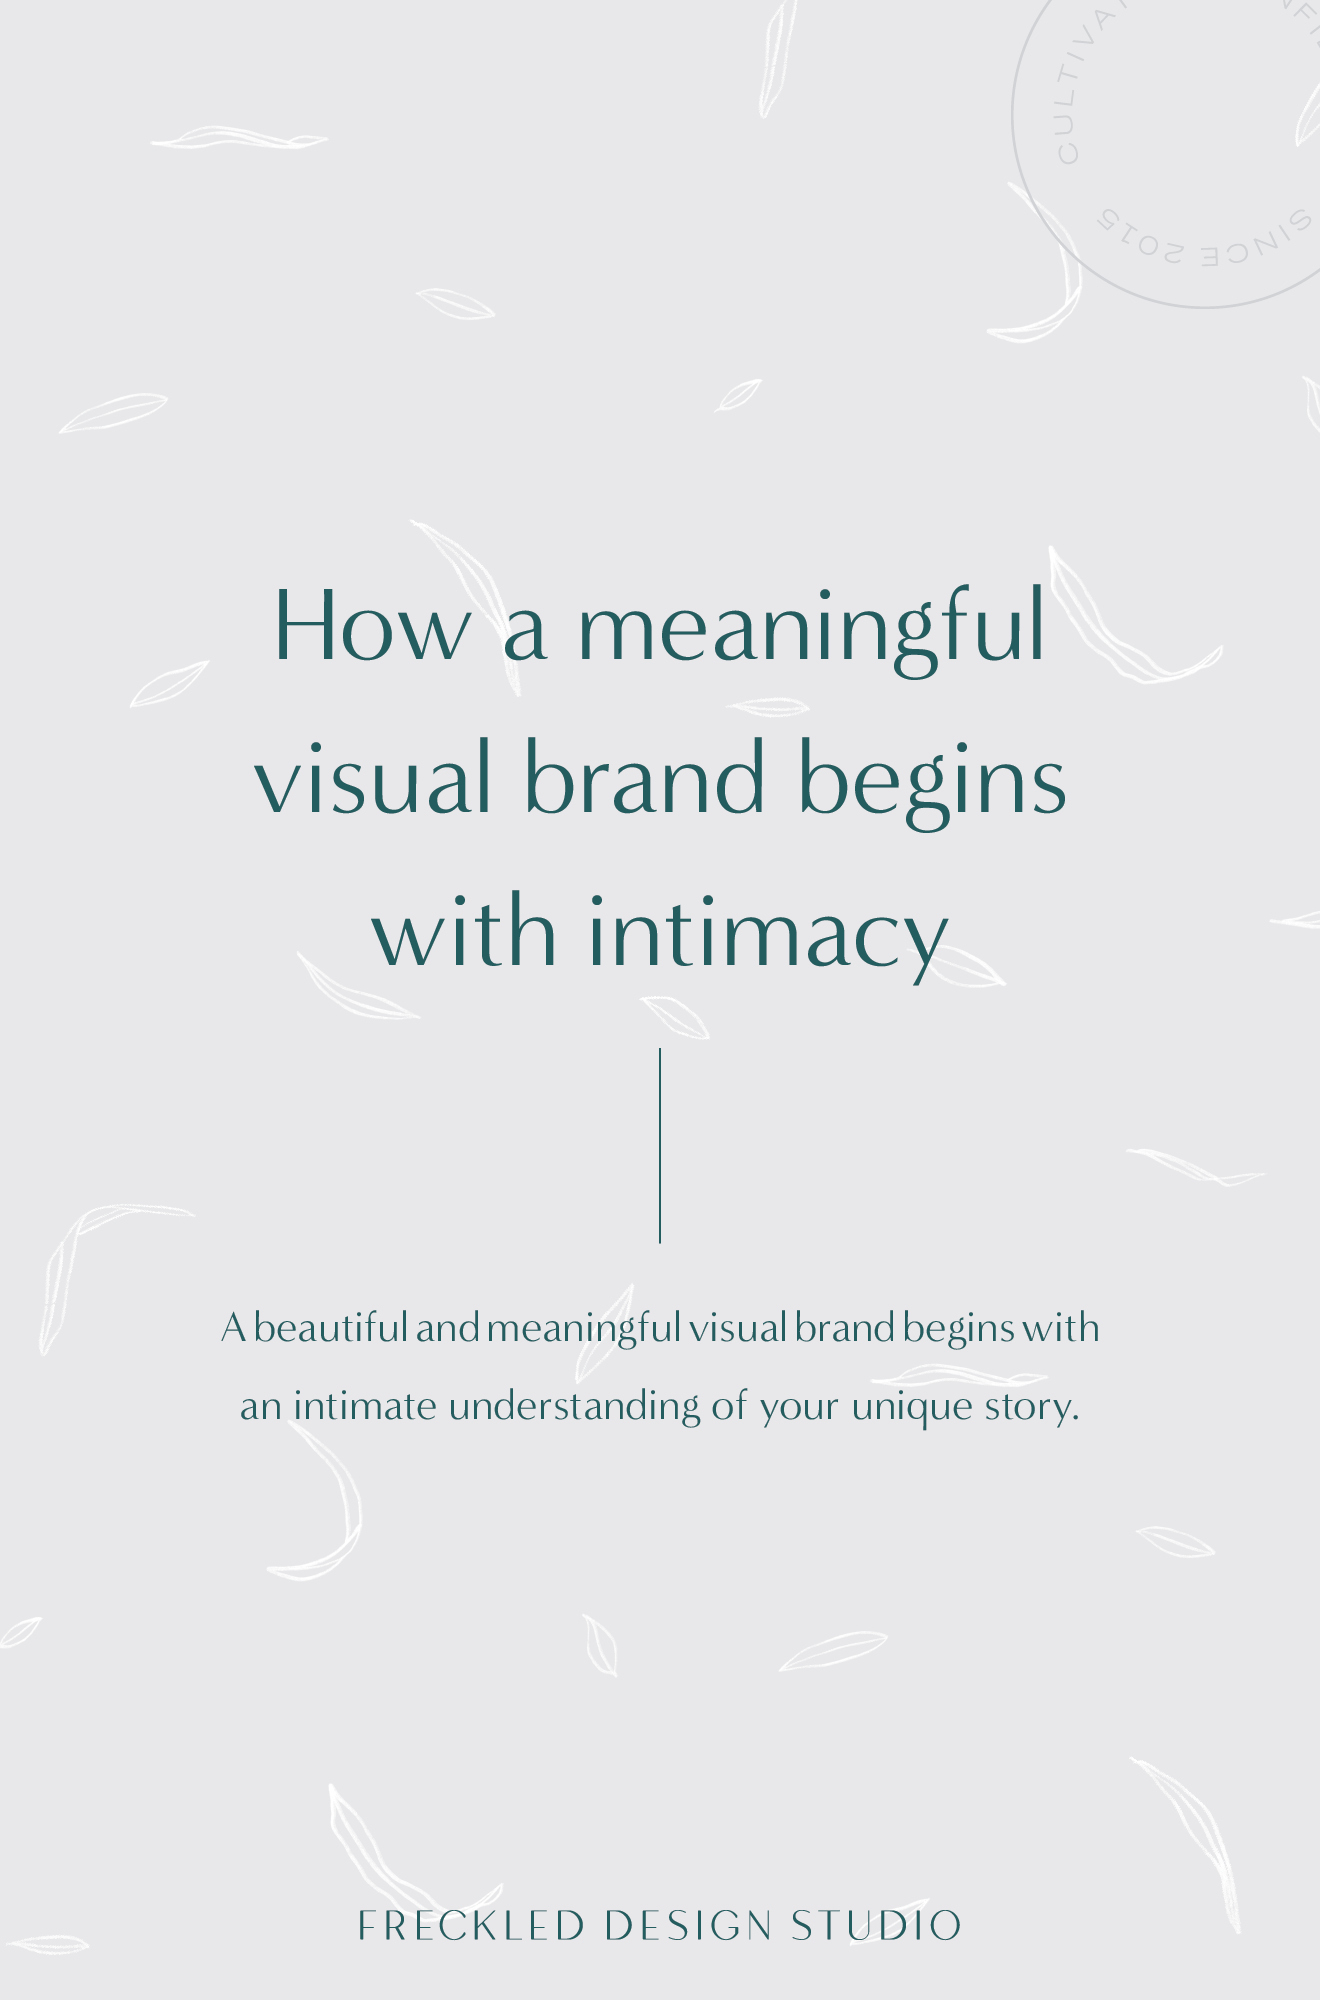 A beautiful and meaningful visual brand begins with an intimate understanding of your unique story.